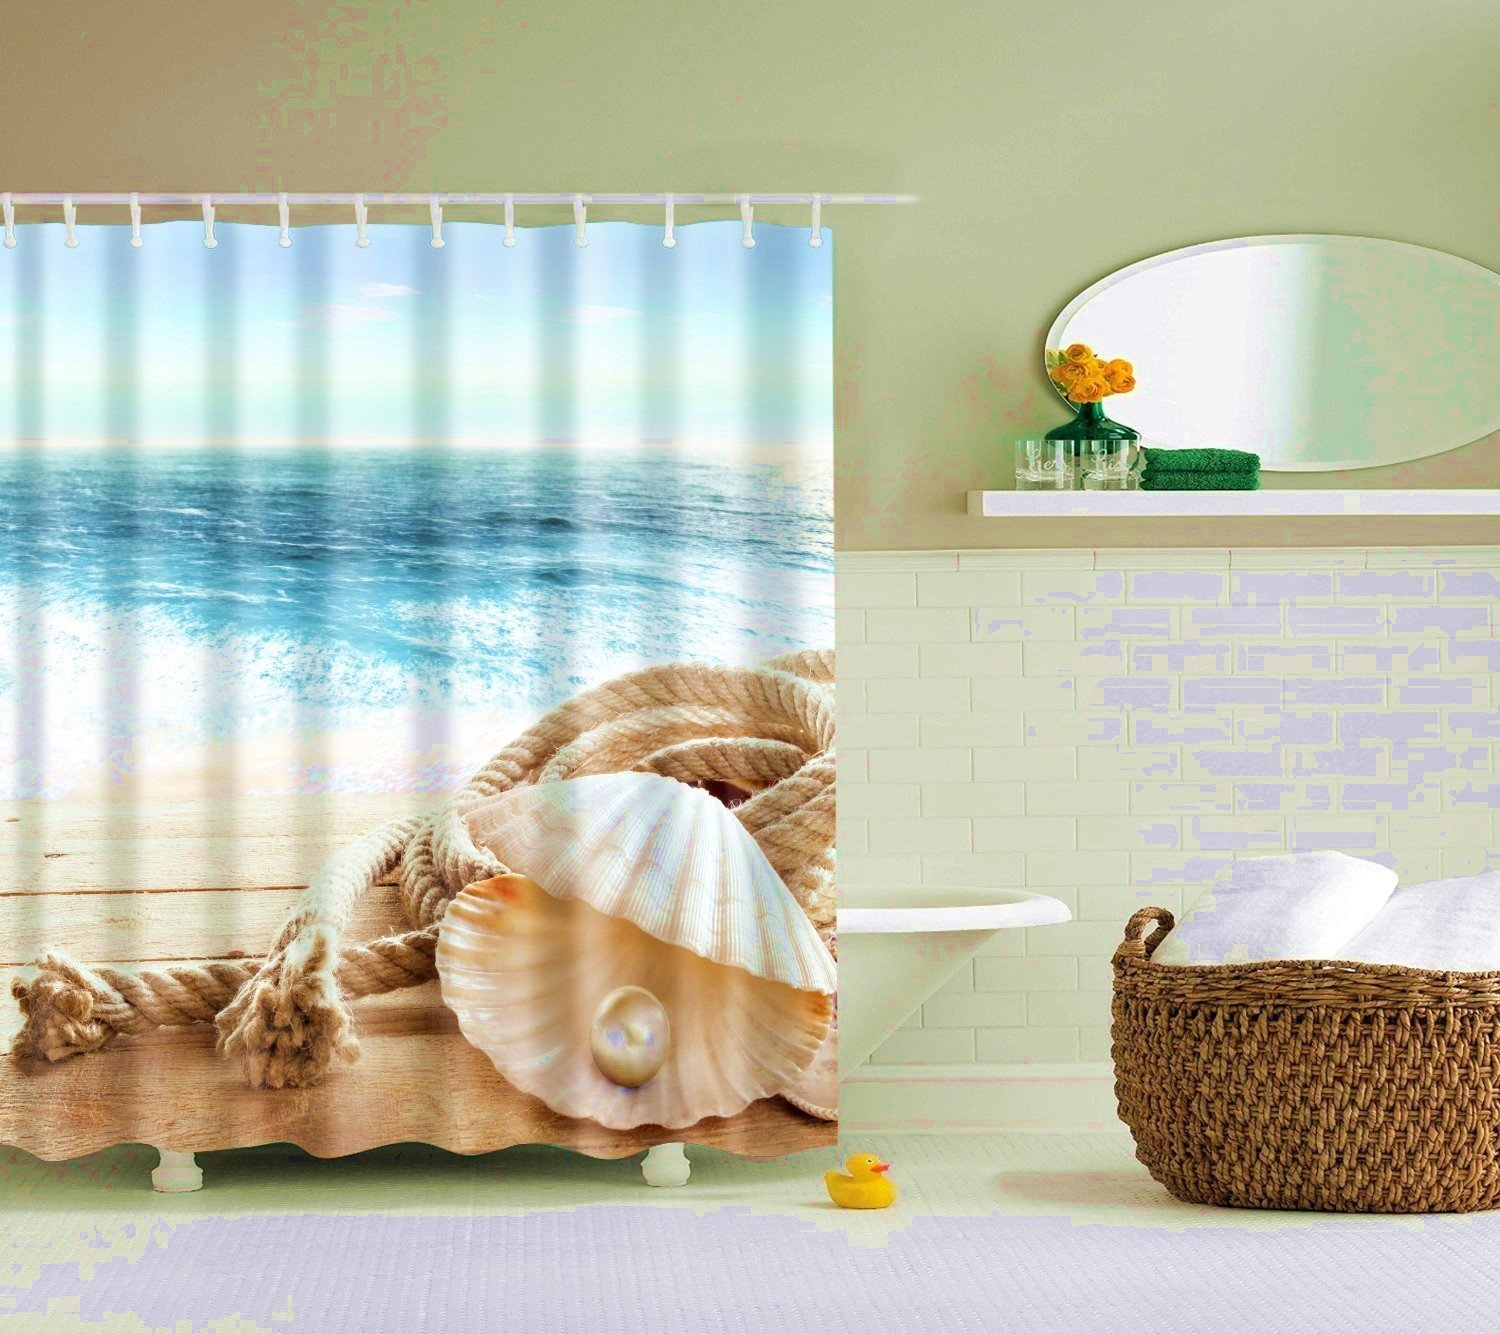 Us 11 1 5 Off Abxinyoule Pearl Shell Shower Curtain Waterproof Fabric With Hook Bathroom Decor Accessory In Shower Curtains From Home Garden On